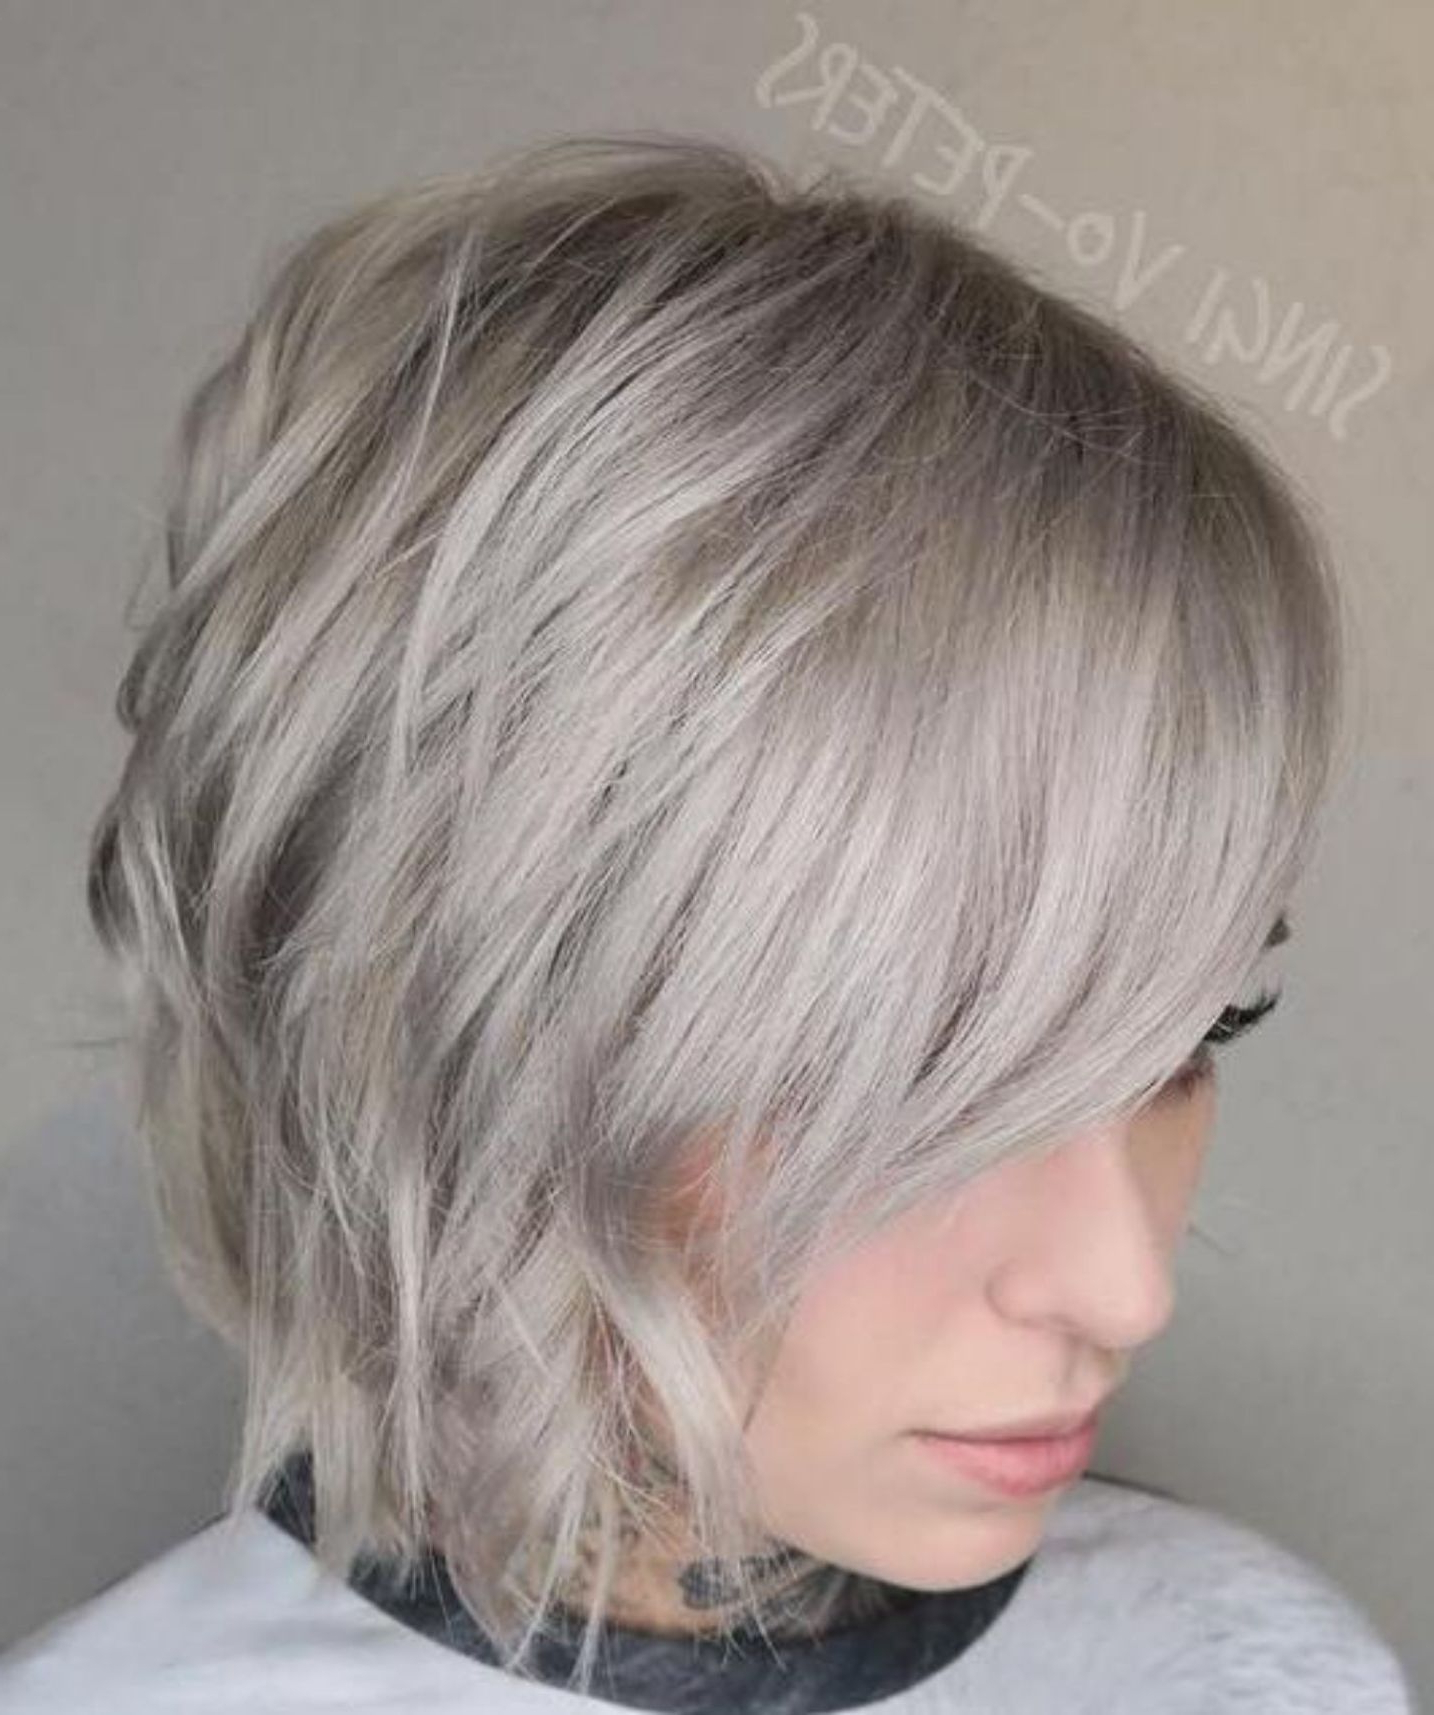 Famous Short Shag Haircuts With Side Bangs Throughout 60 Short Shag Hairstyles That You Simply Can't Miss In (View 4 of 20)